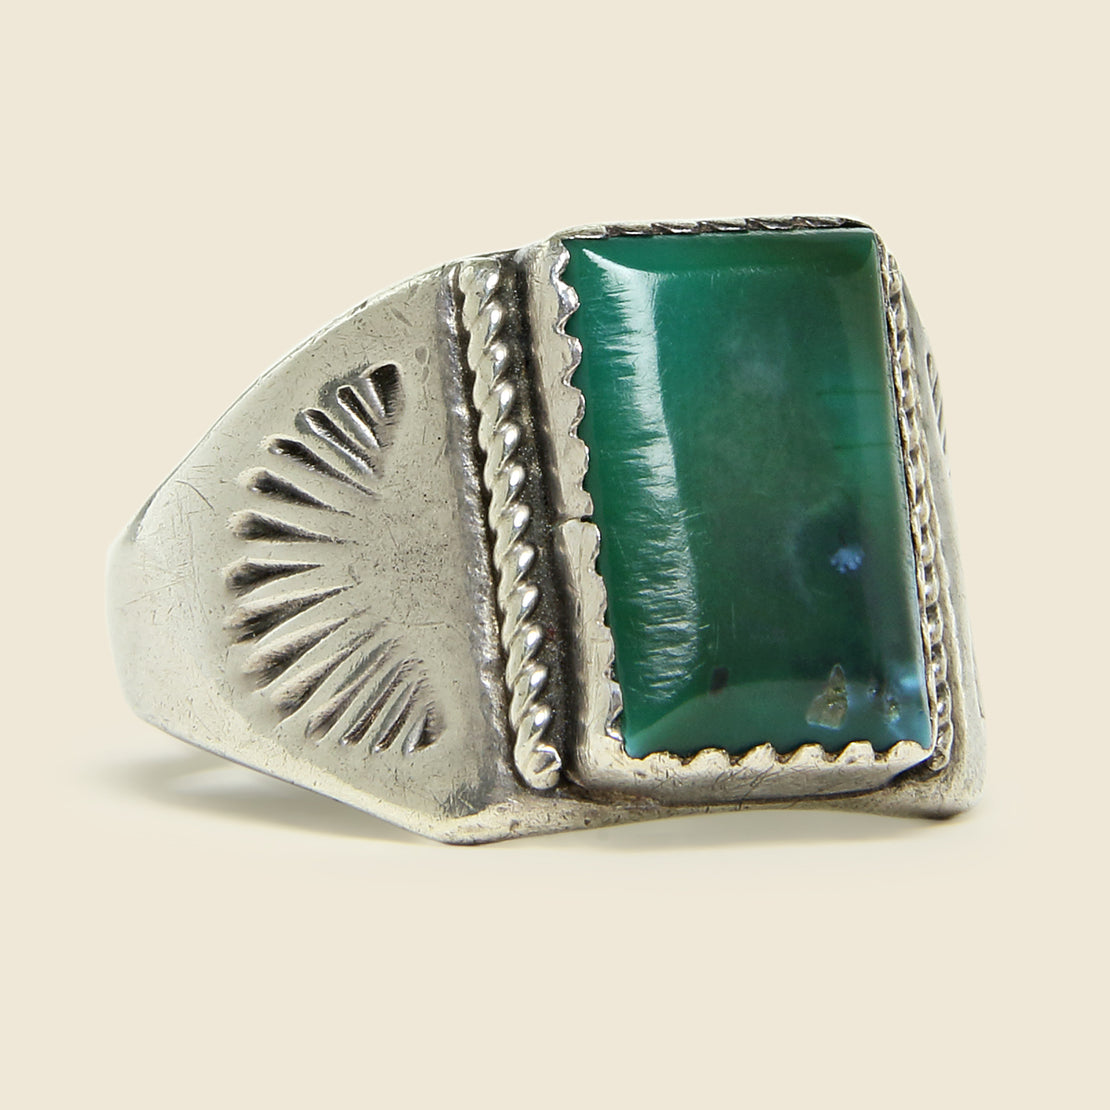 Vintage Green Turquoise Silver Ring